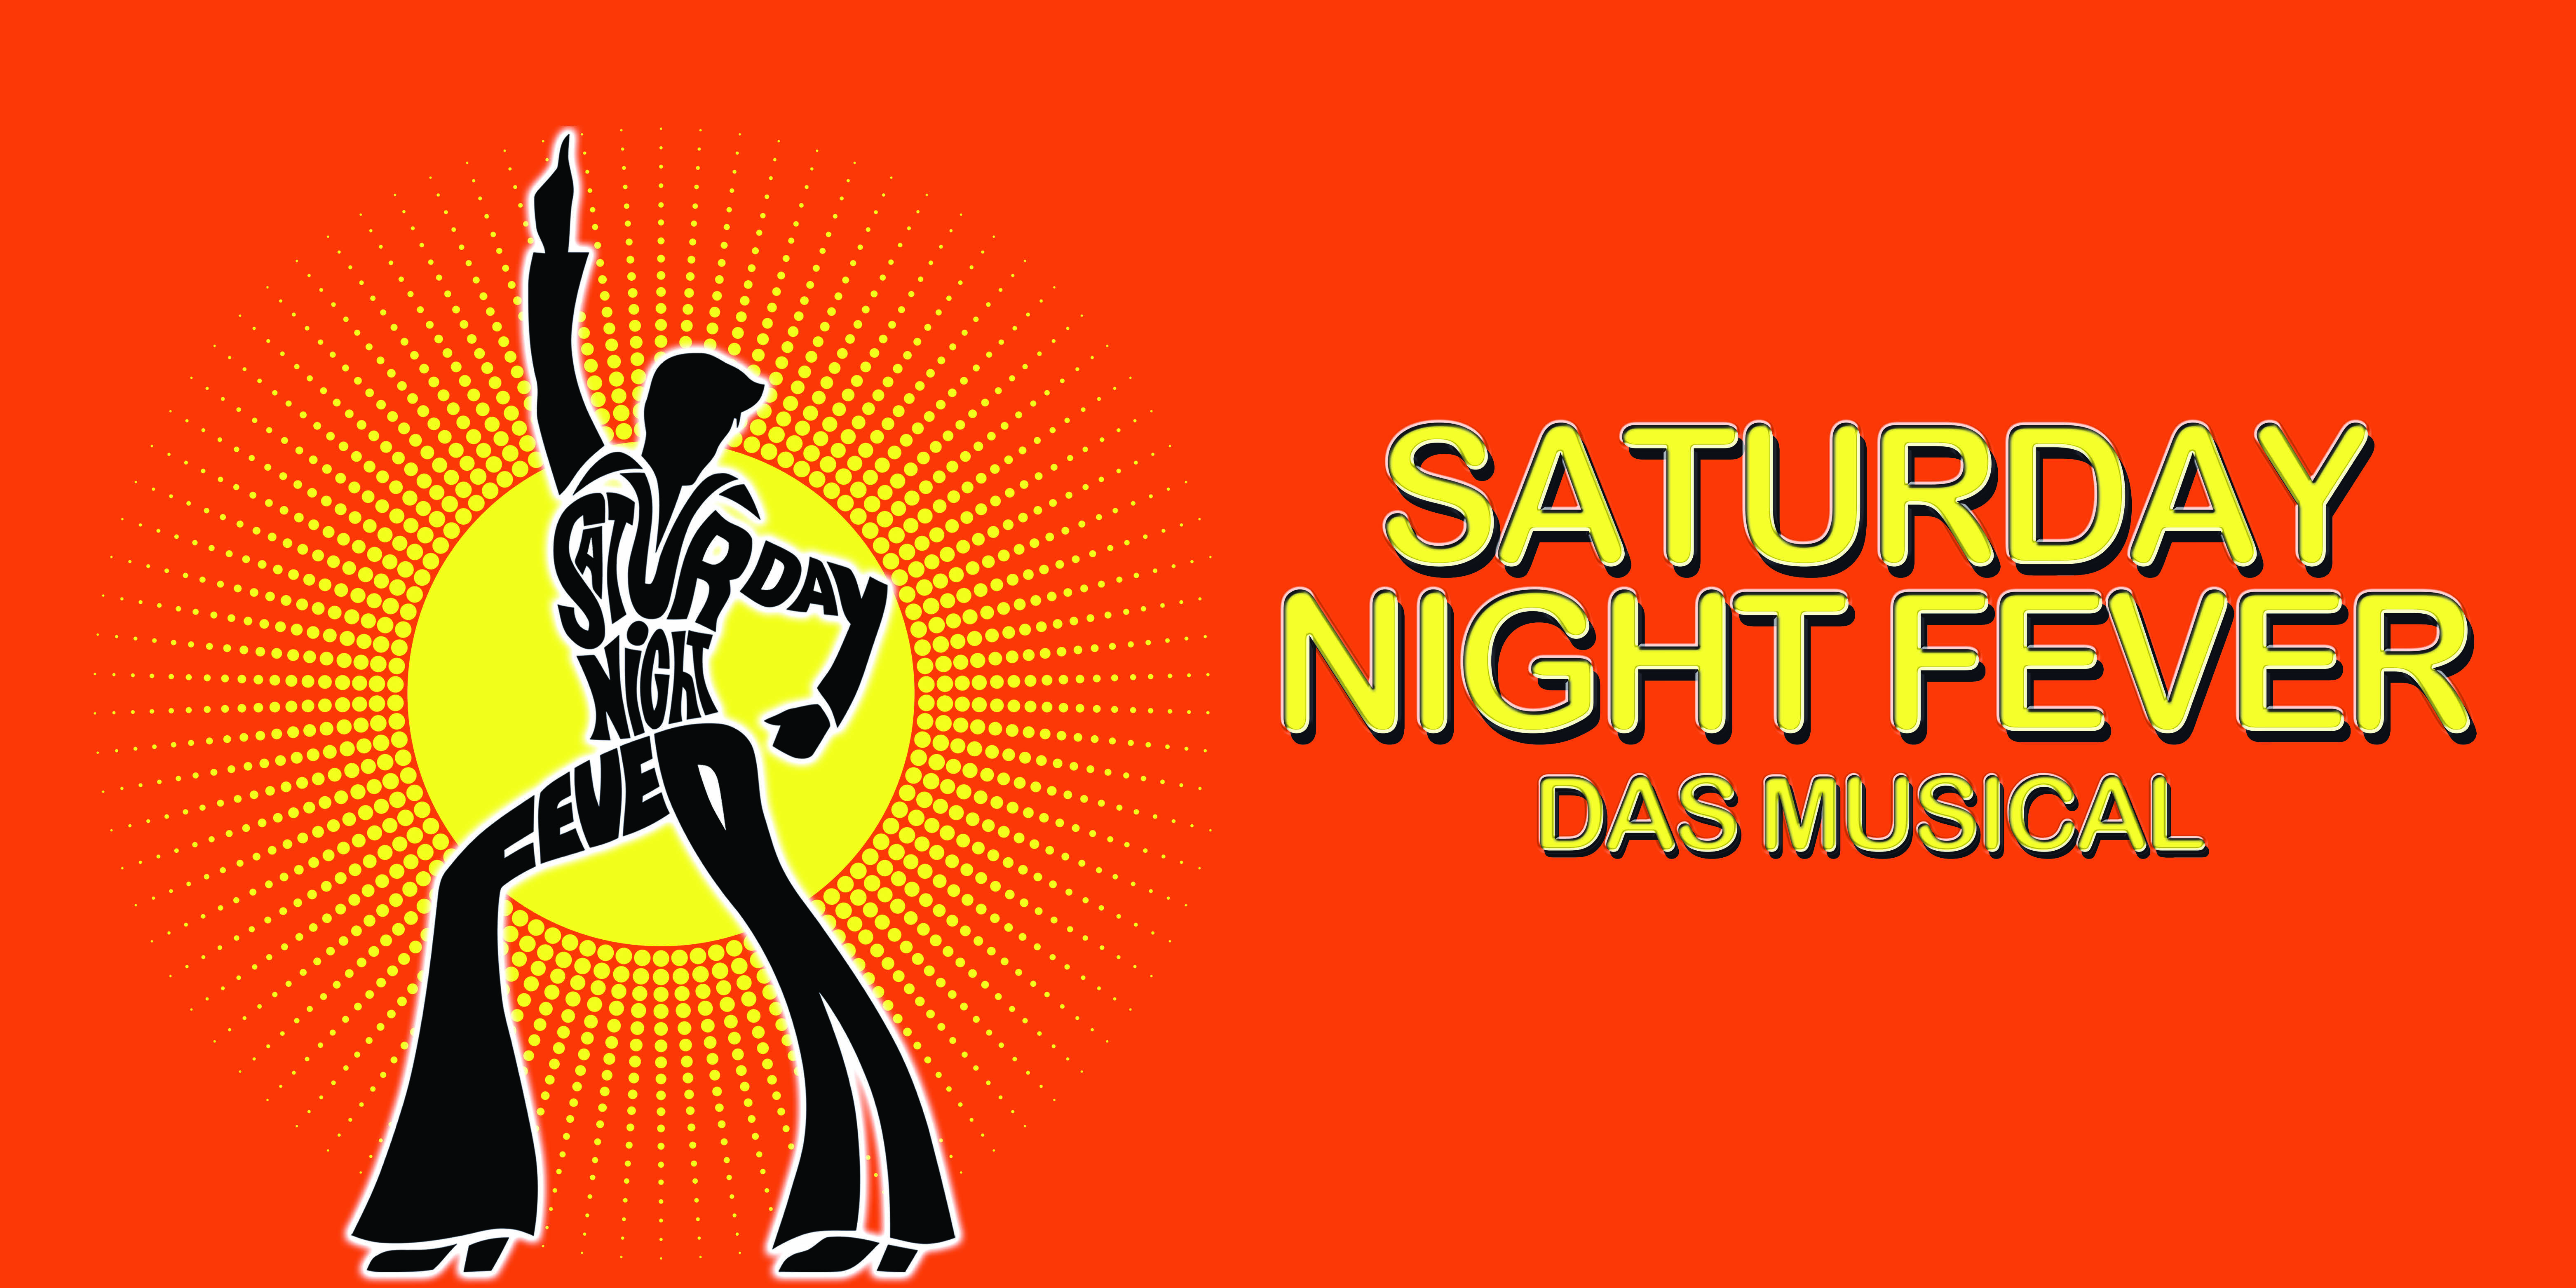 Burgfestspiele Alzenau 2019 präsentieren: SATURDAY NIGHT FEVER